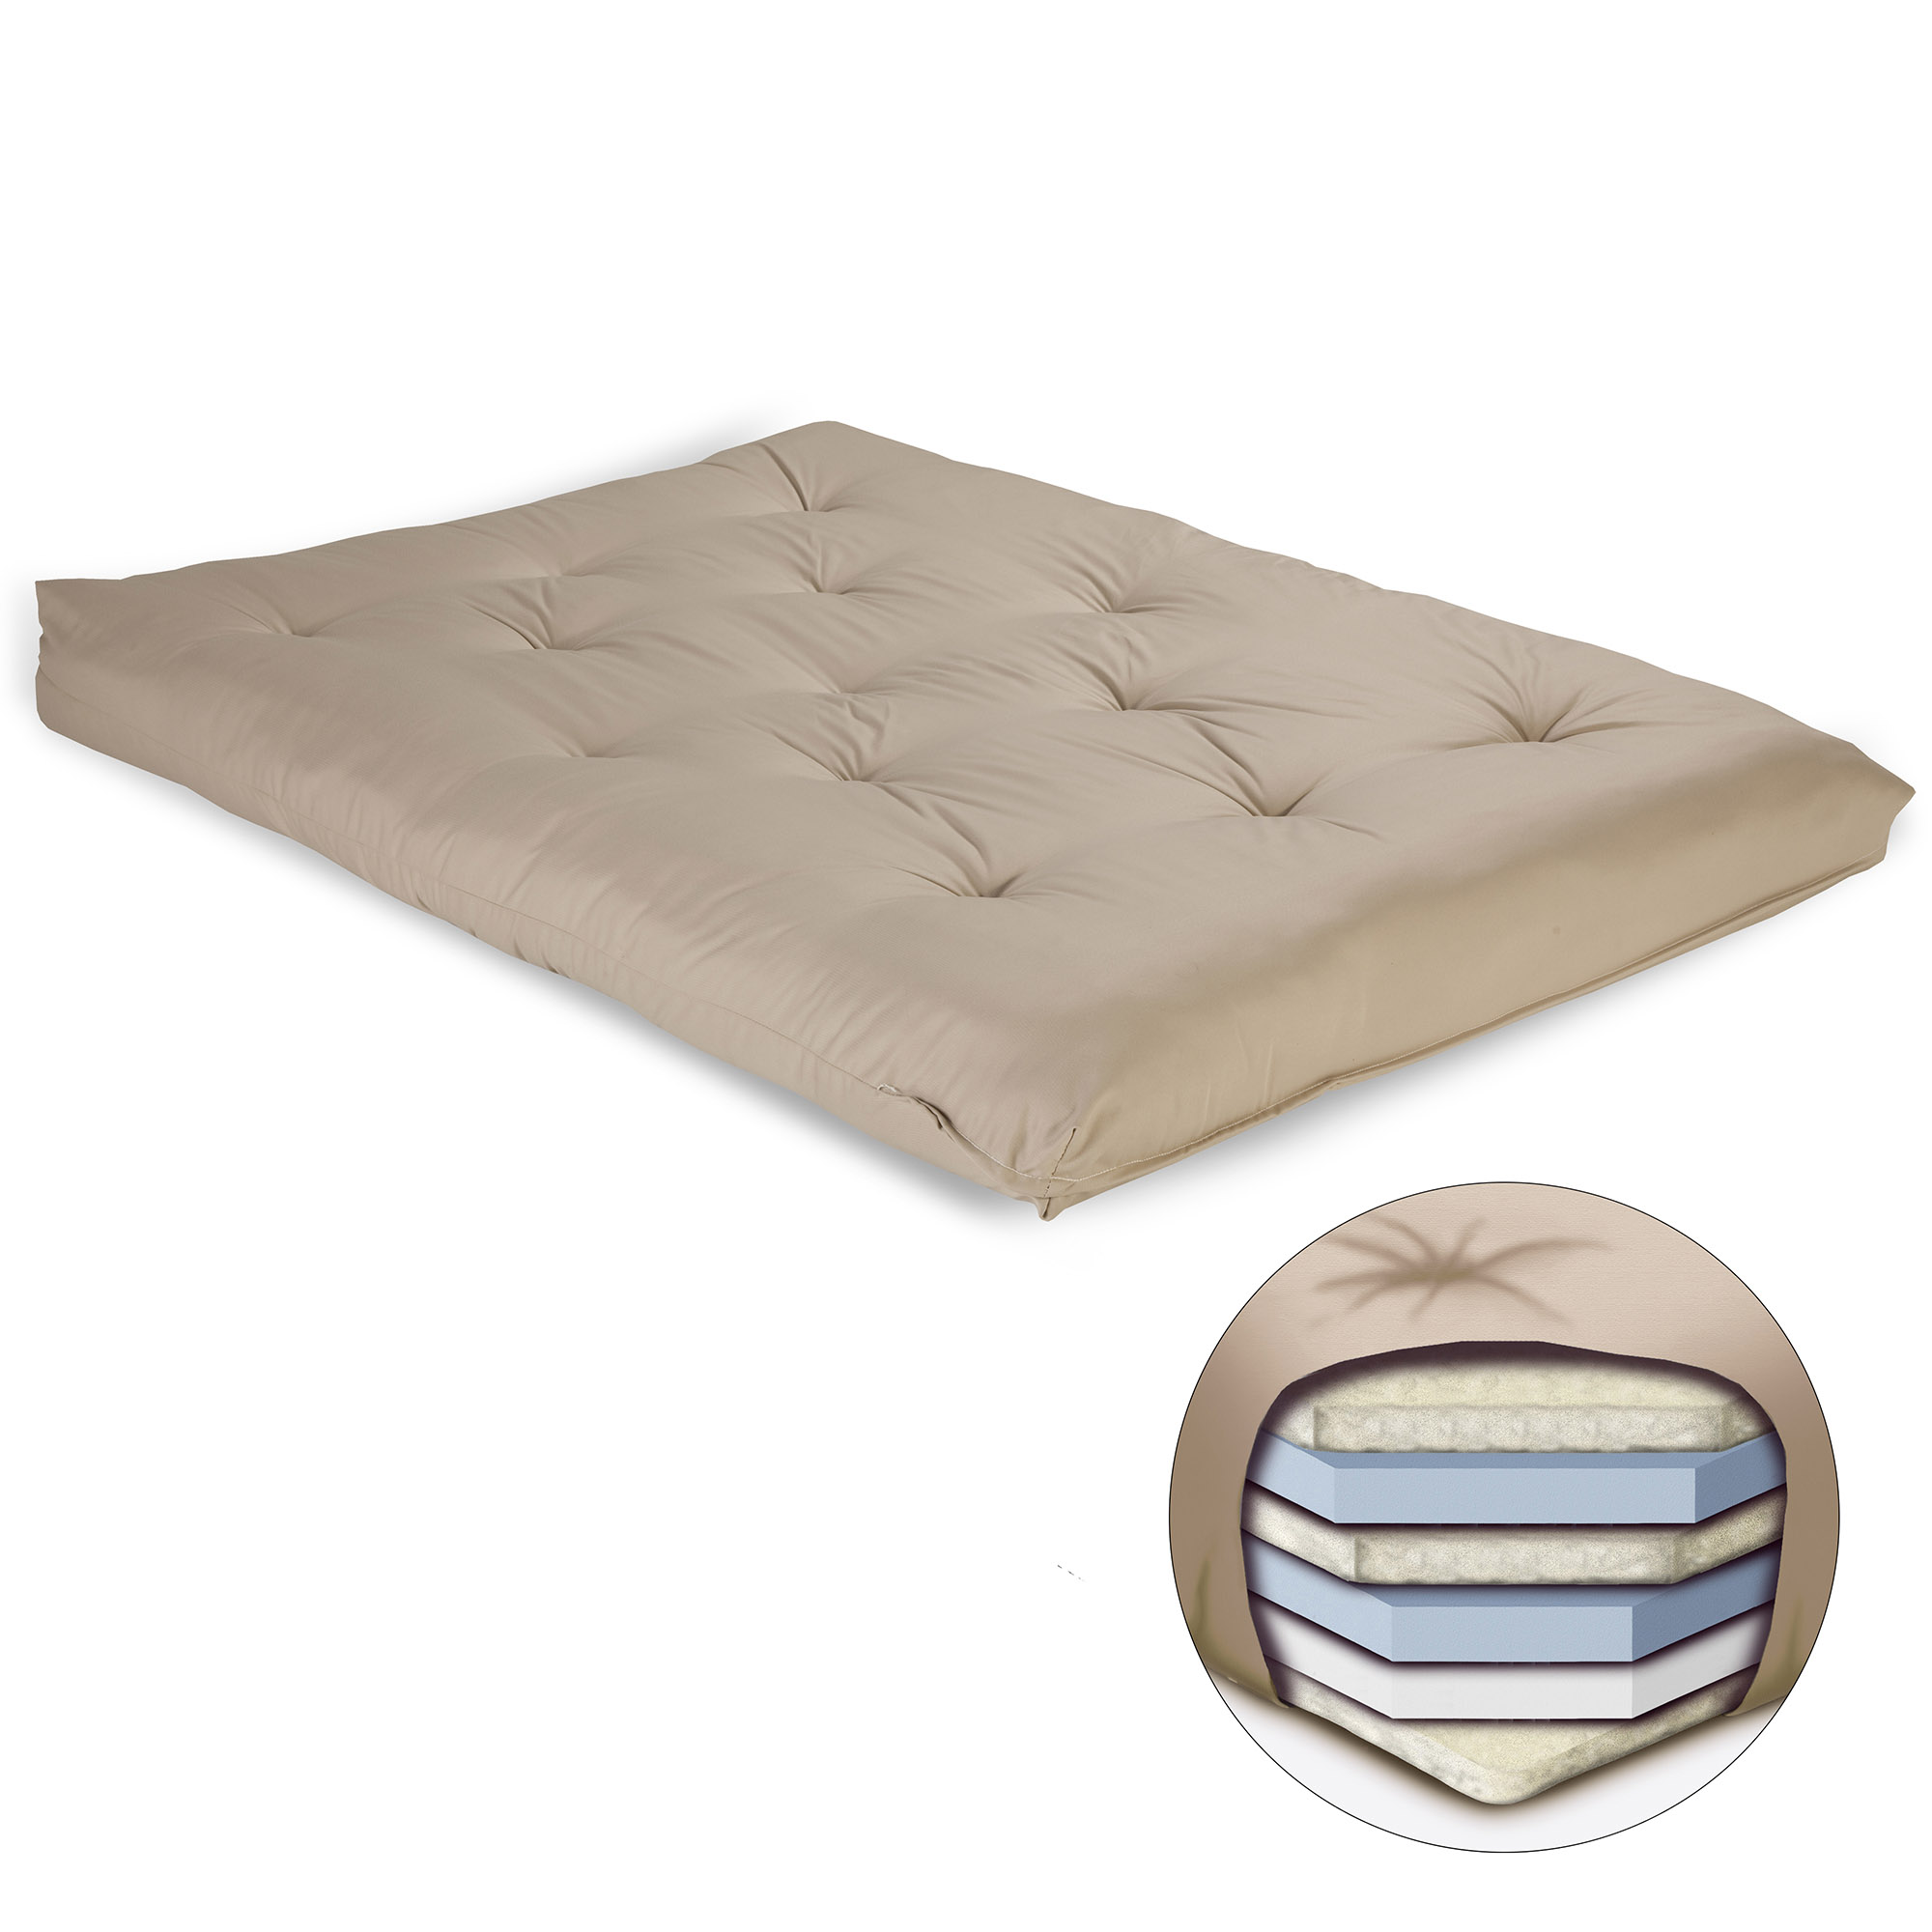 8 inch futon mattress with multi layer cotton and foam core khaki 600813 in by fashion bed group in lafayette in   8 inch futon      rh   lehnens